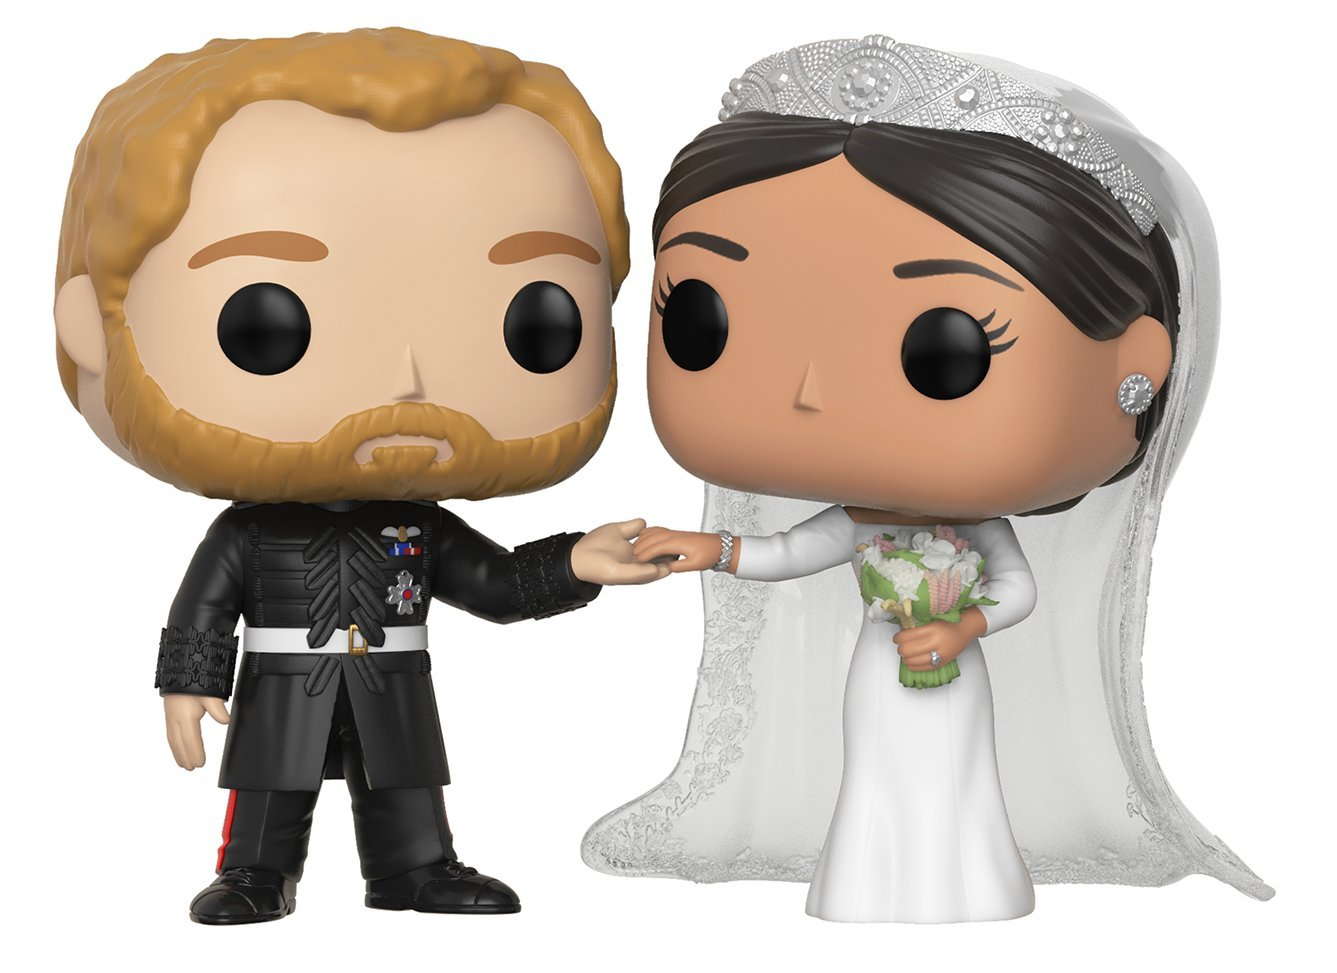 Funko Pop! Royals: Prince Harry And Meghan Markle (2-Pack)